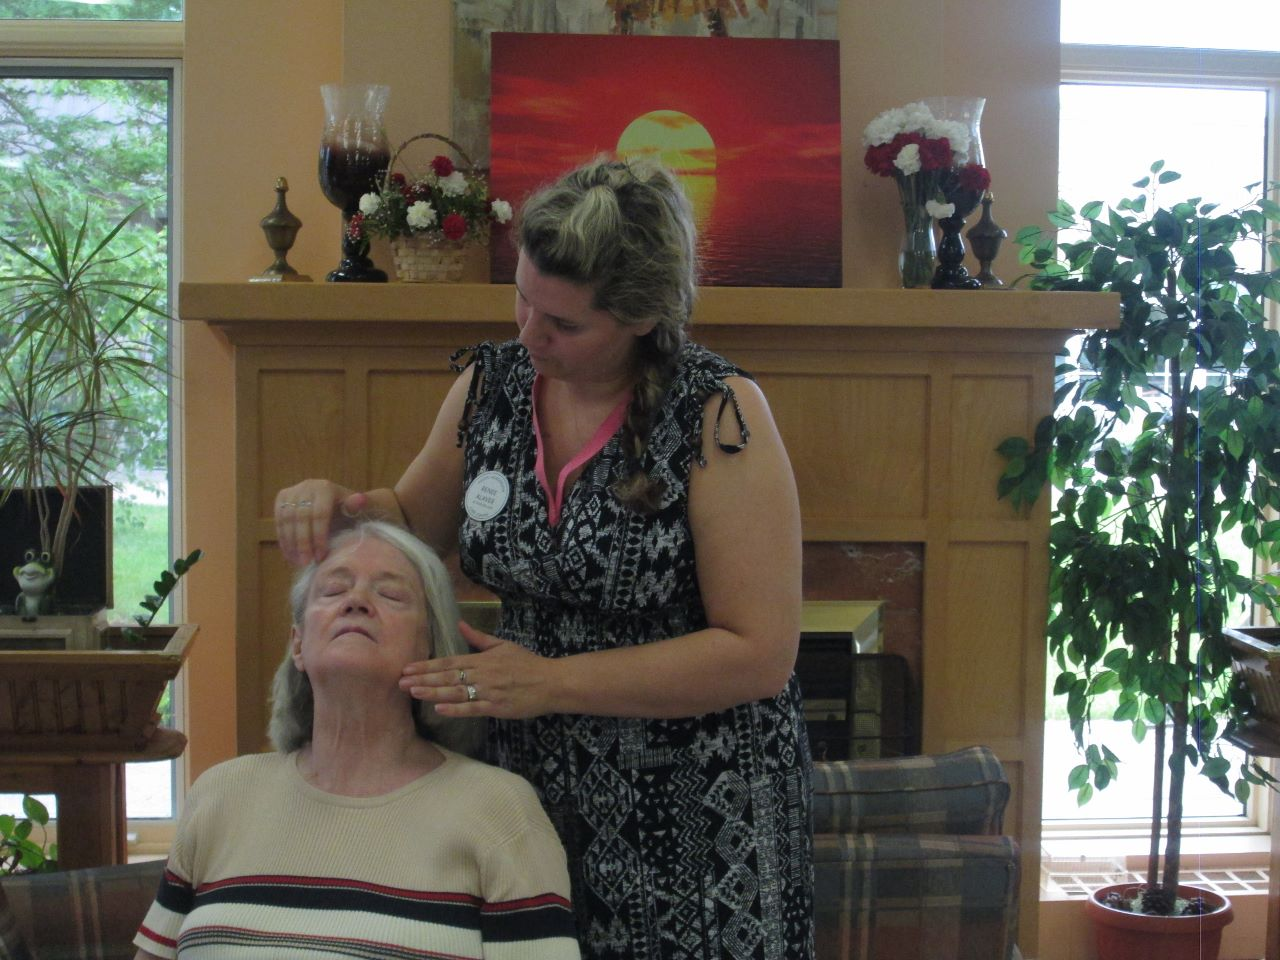 Resident Leslie Rae in getting her hair done by staff member Renée Alaver